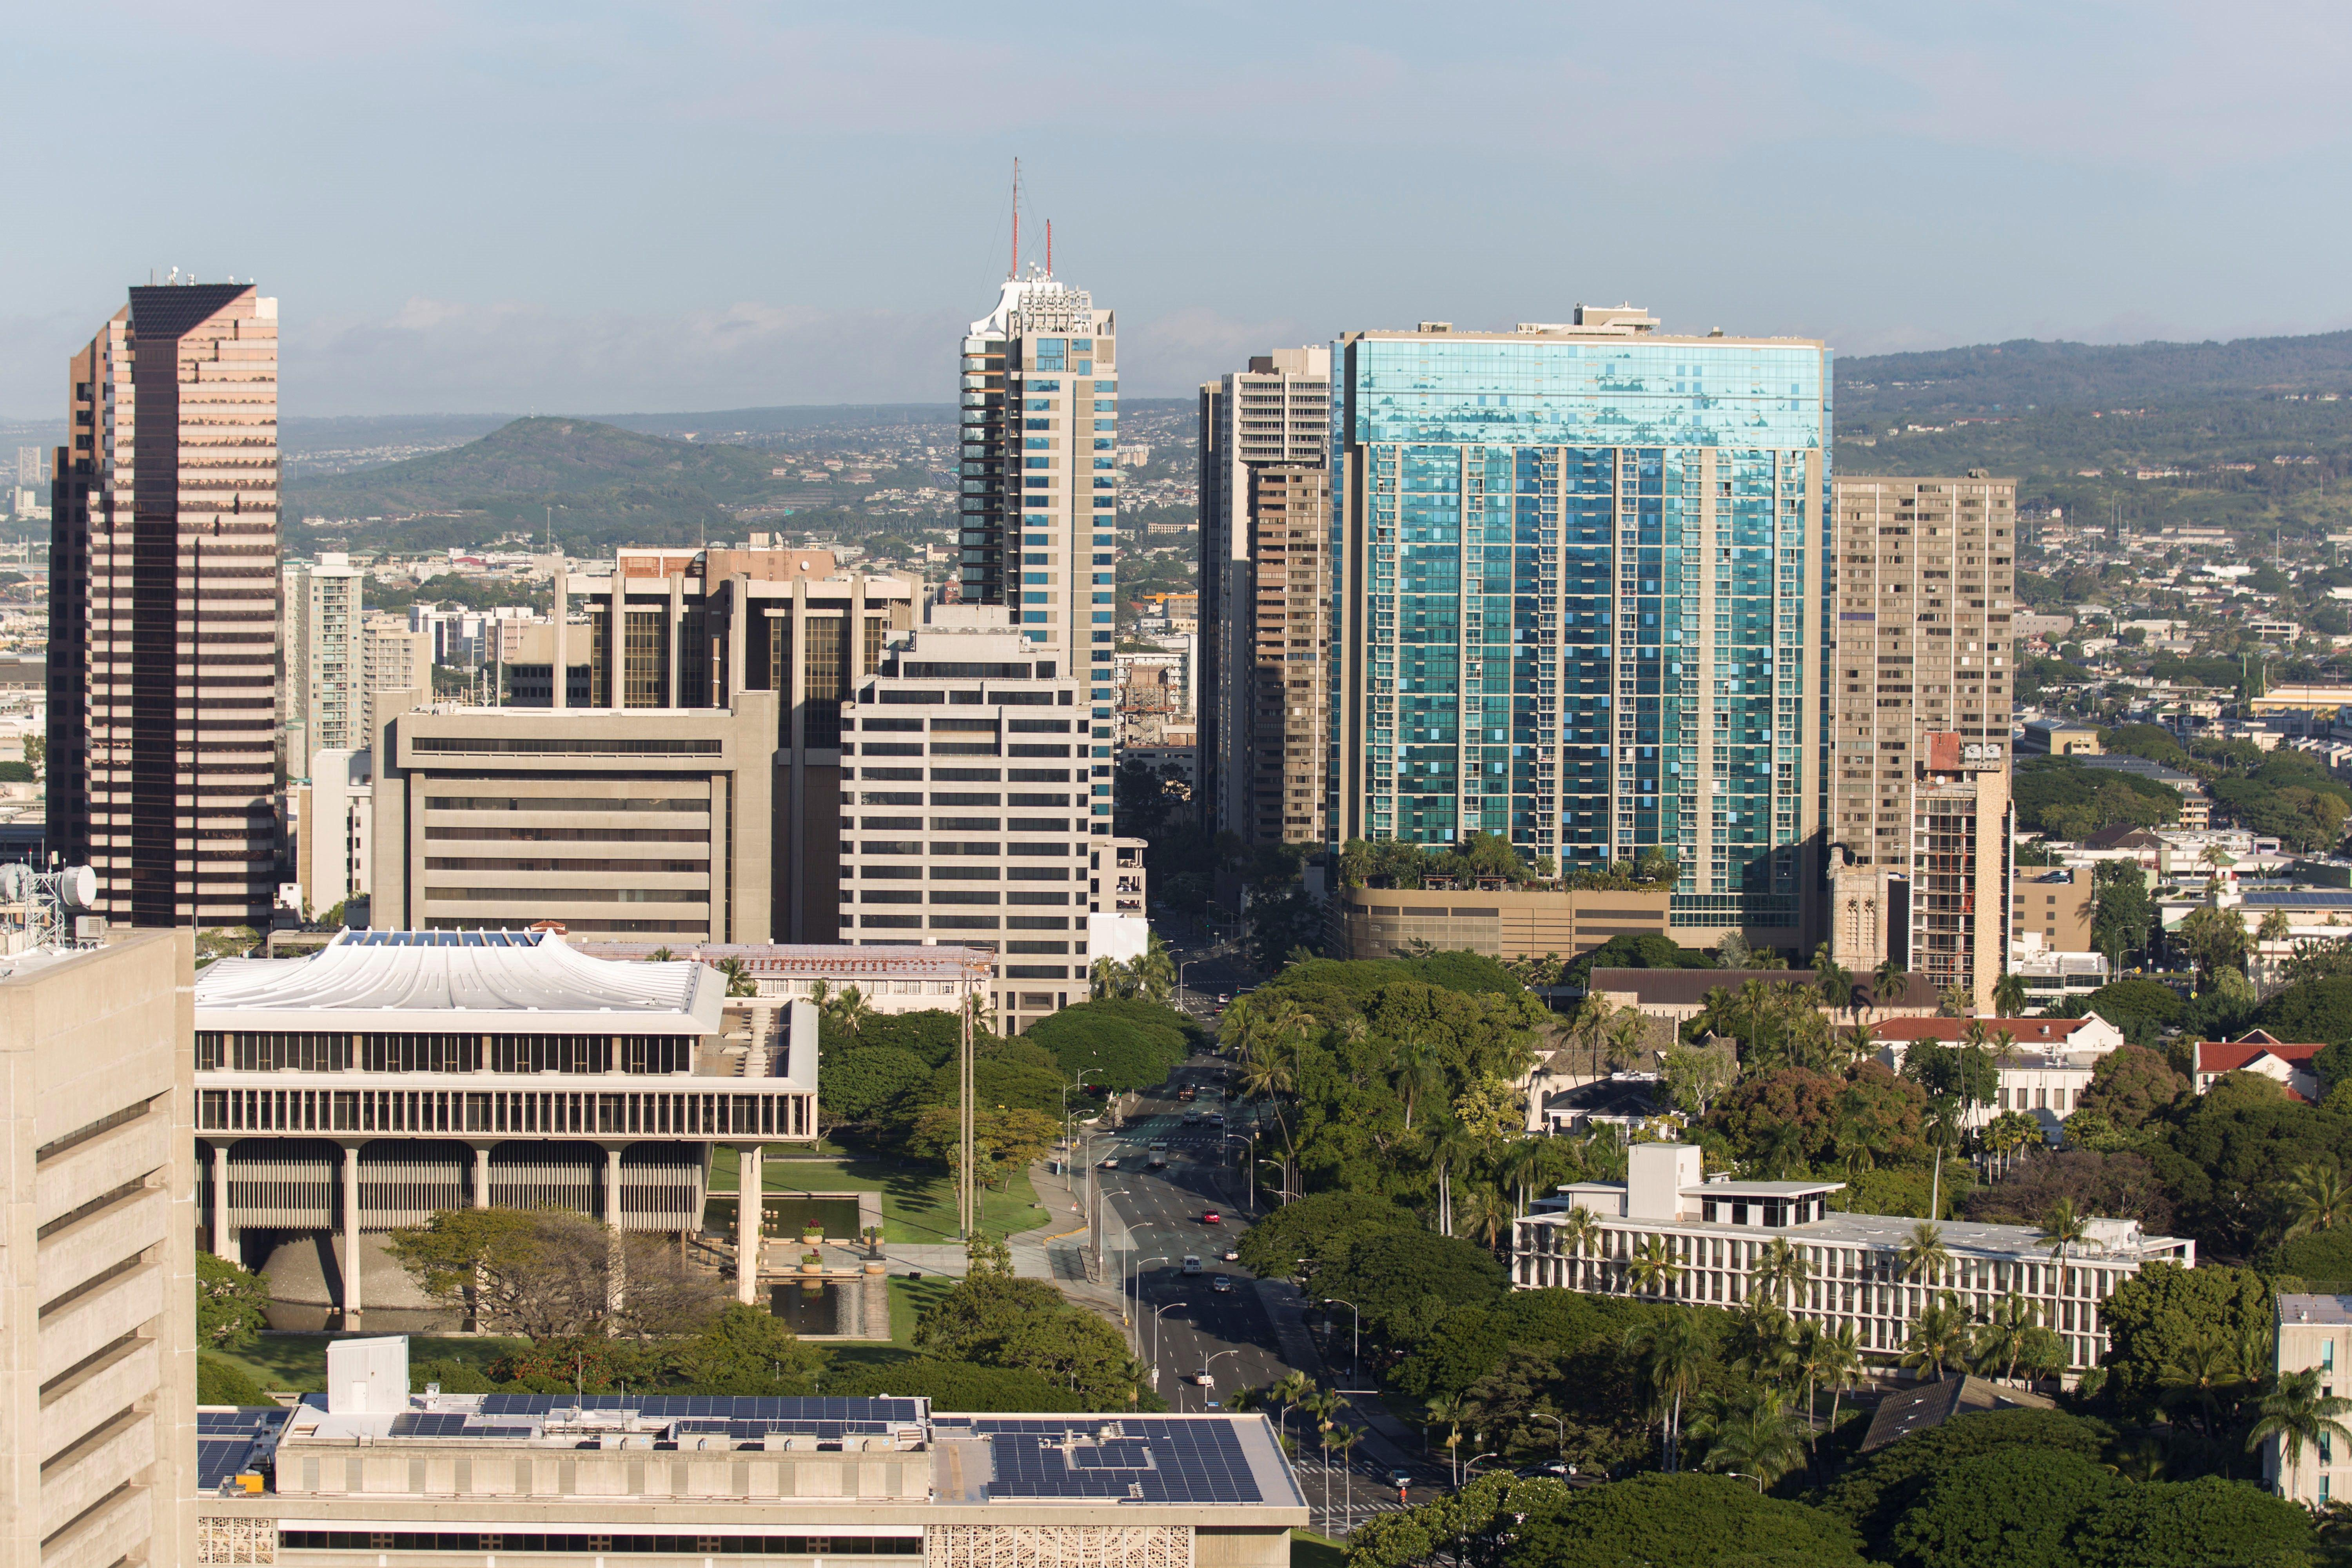 A morning view of the city of Honolulu, Hawaii is seen on January 13, 2018.